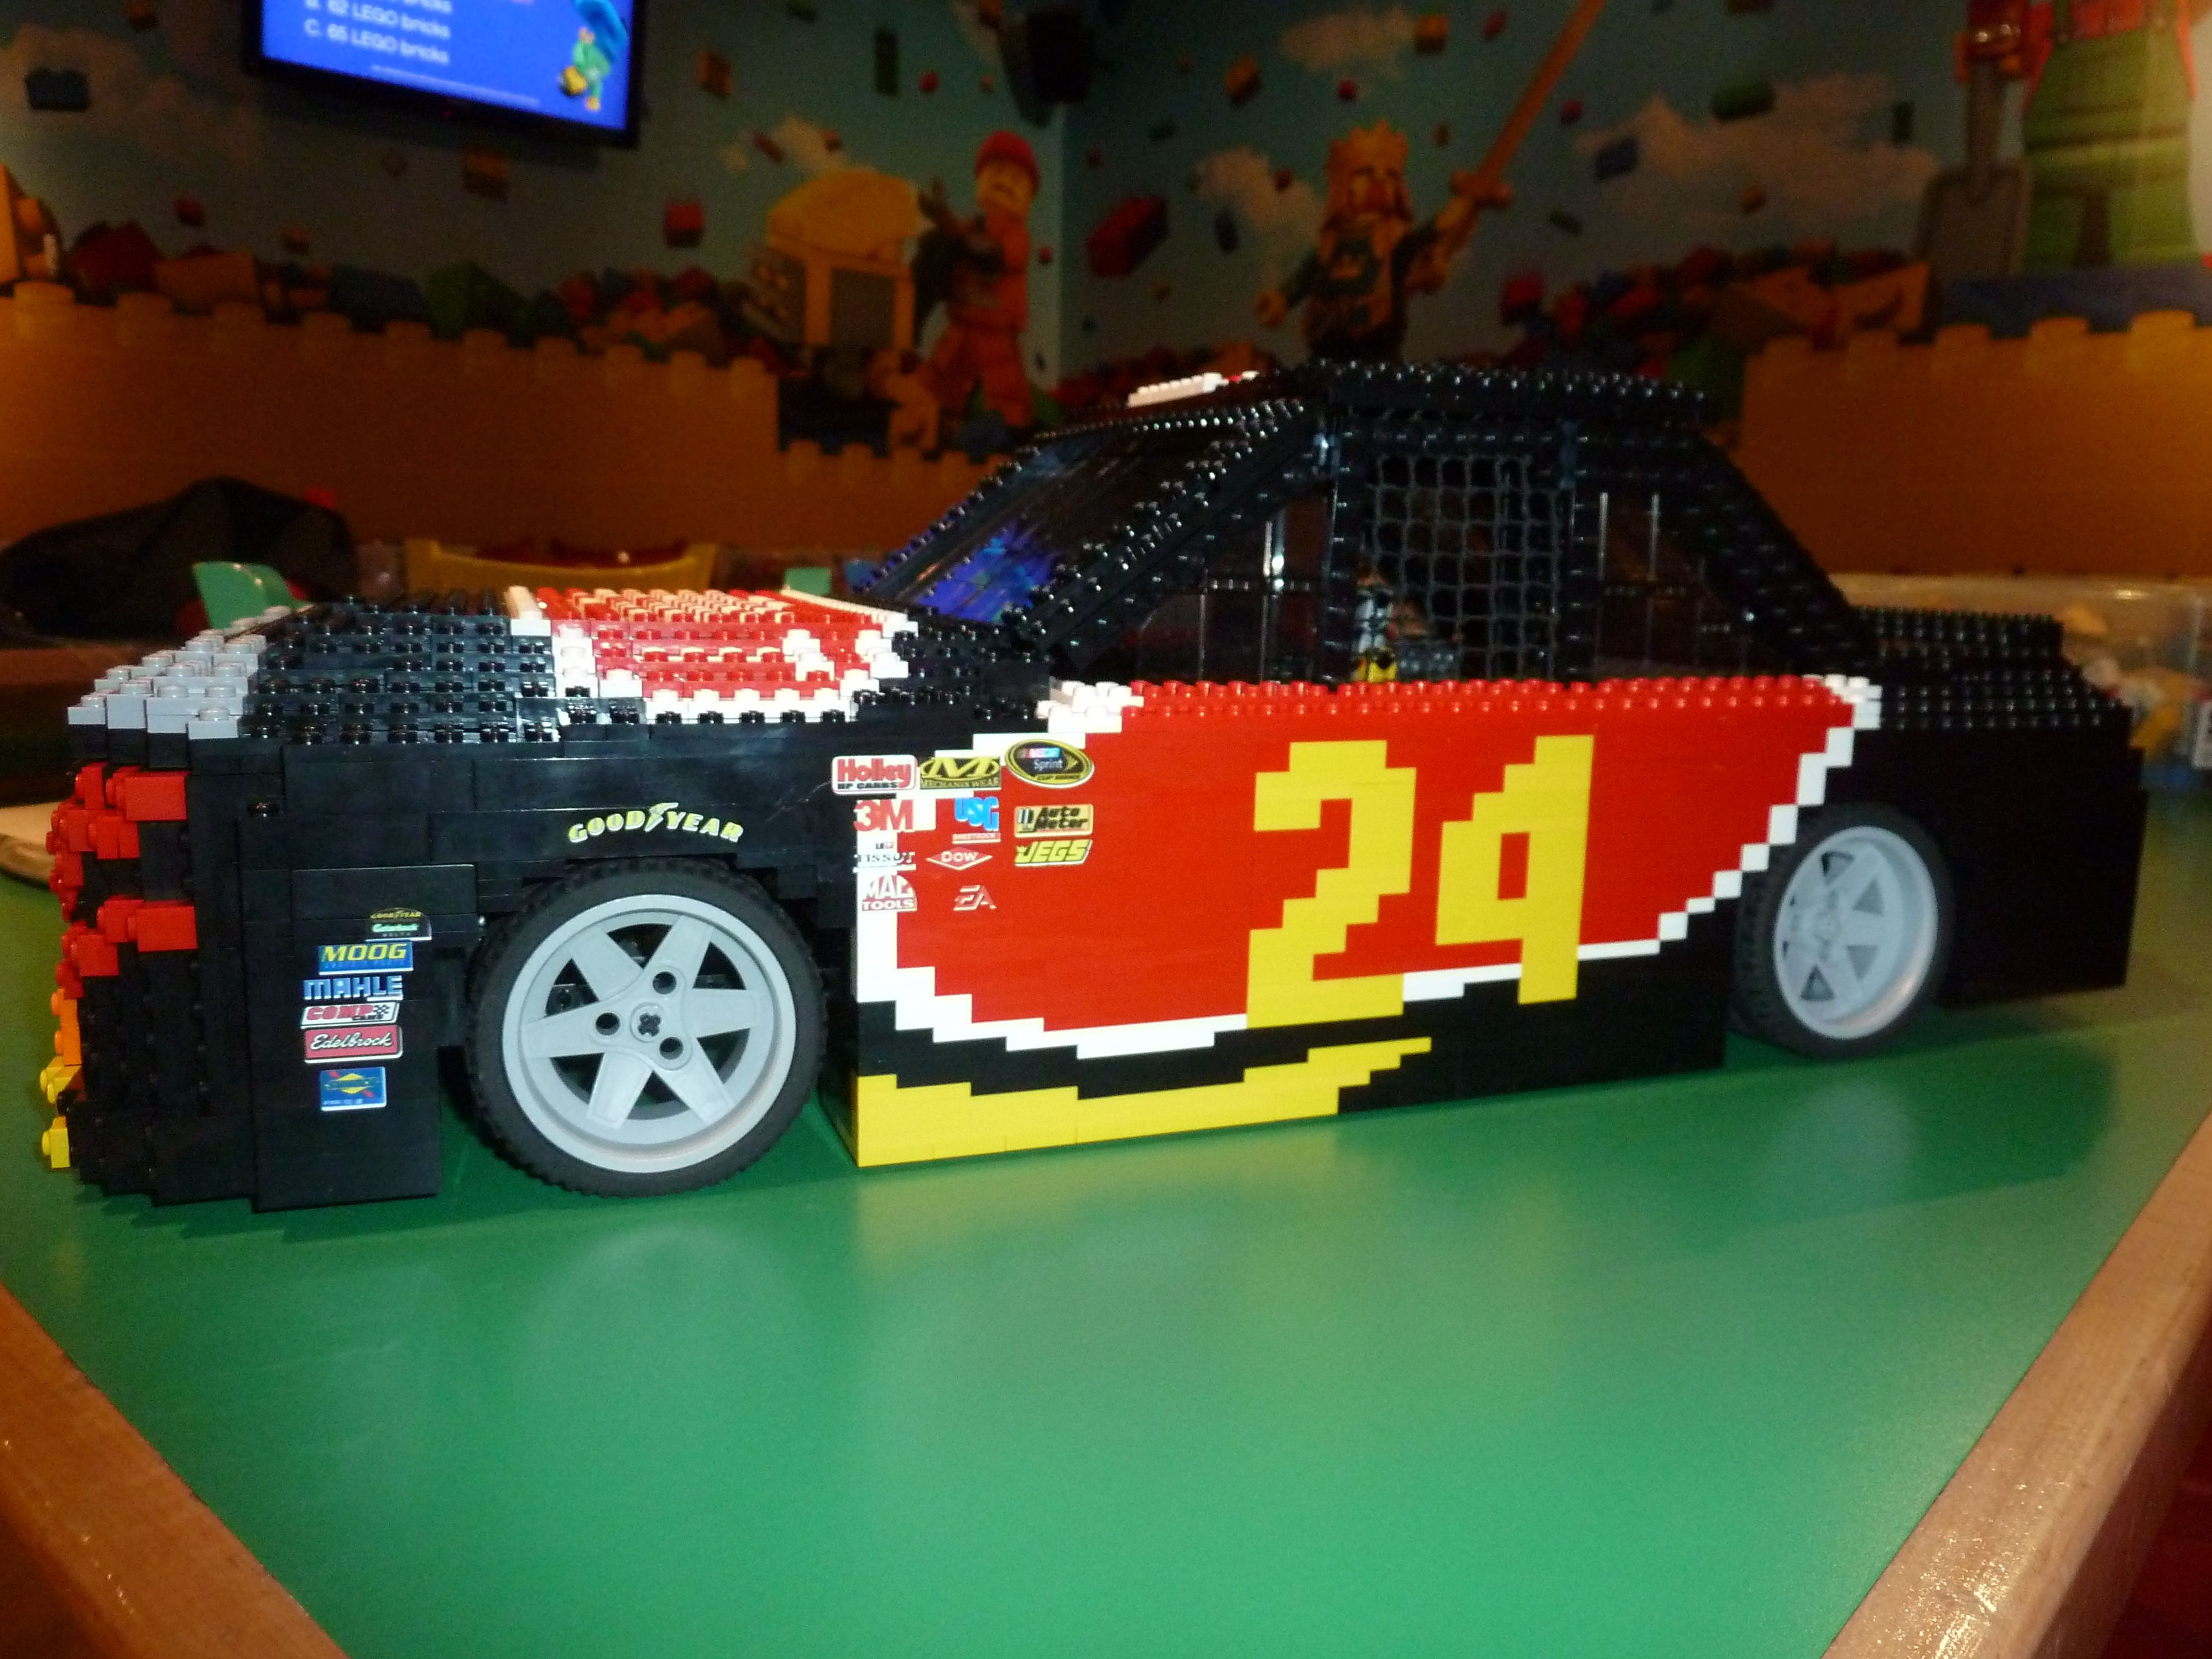 Fastsigns of north dallas created tiny sponsor decals for the side of a jeff gordon legoland